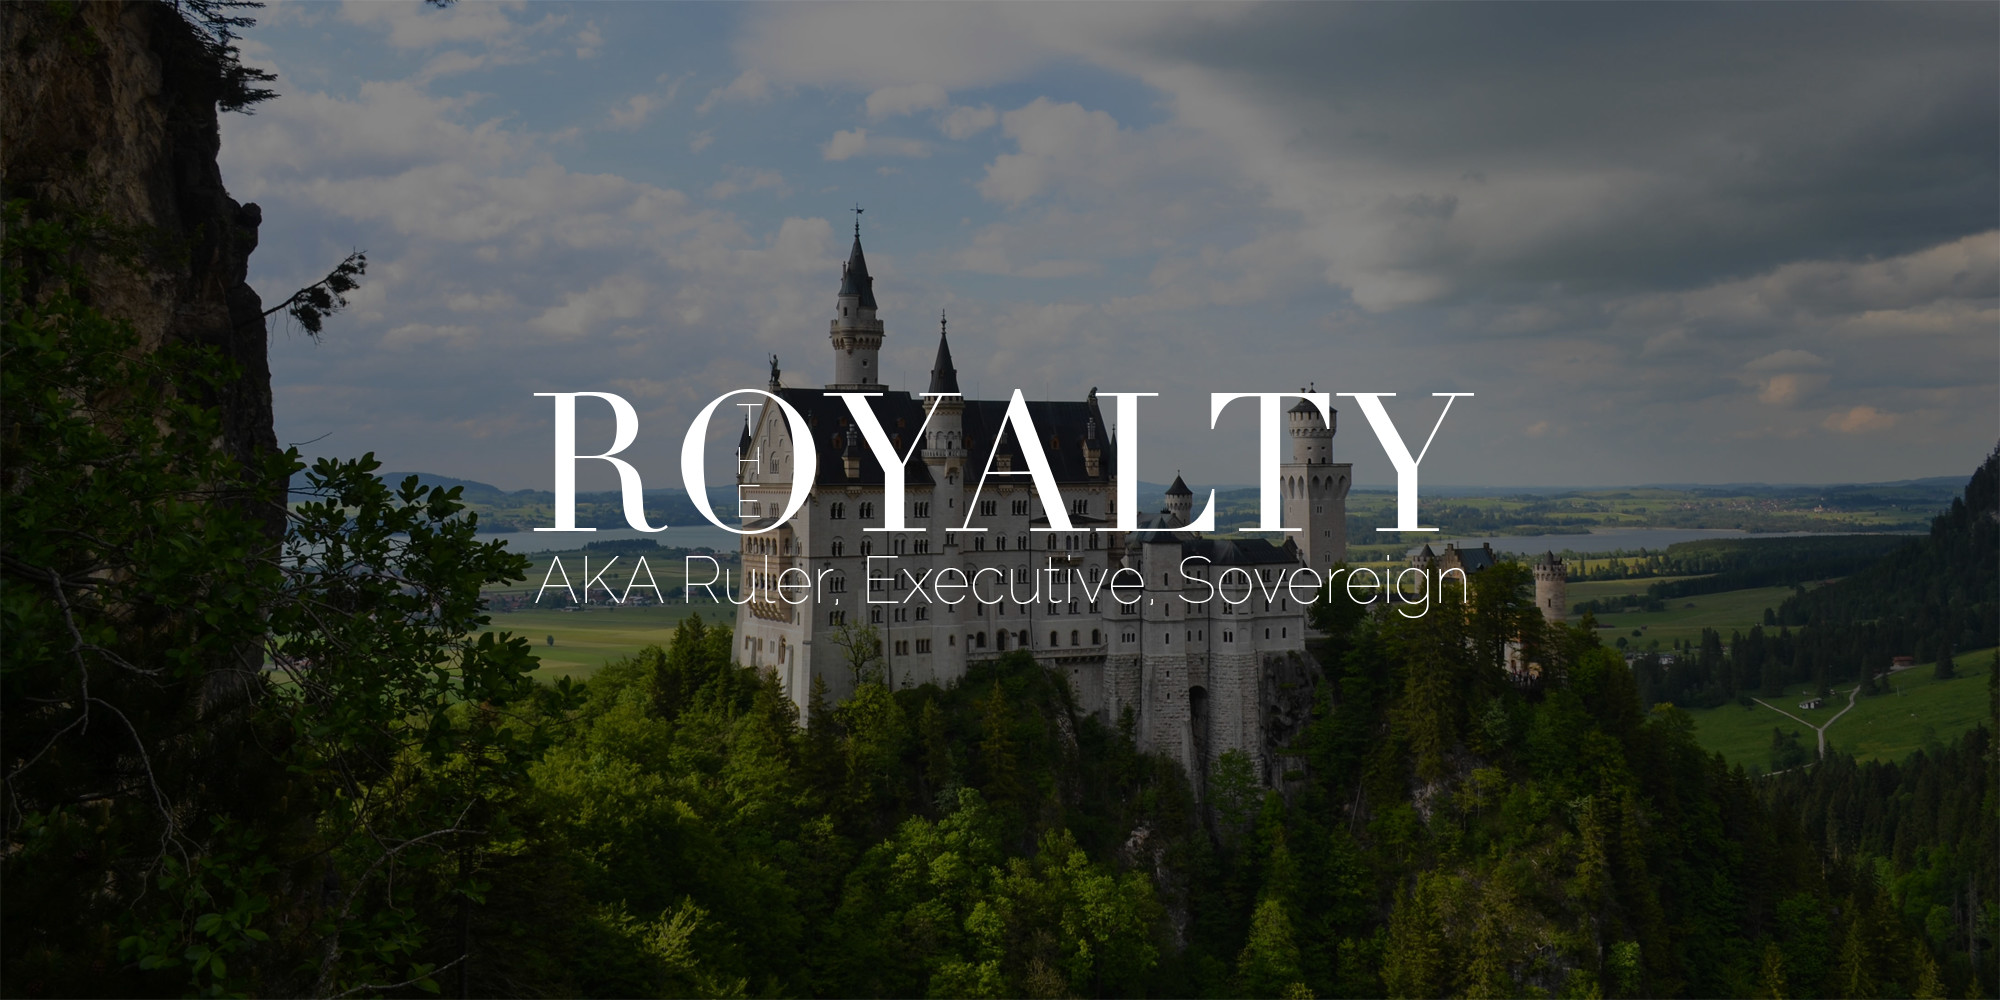 Royalty brand archetype